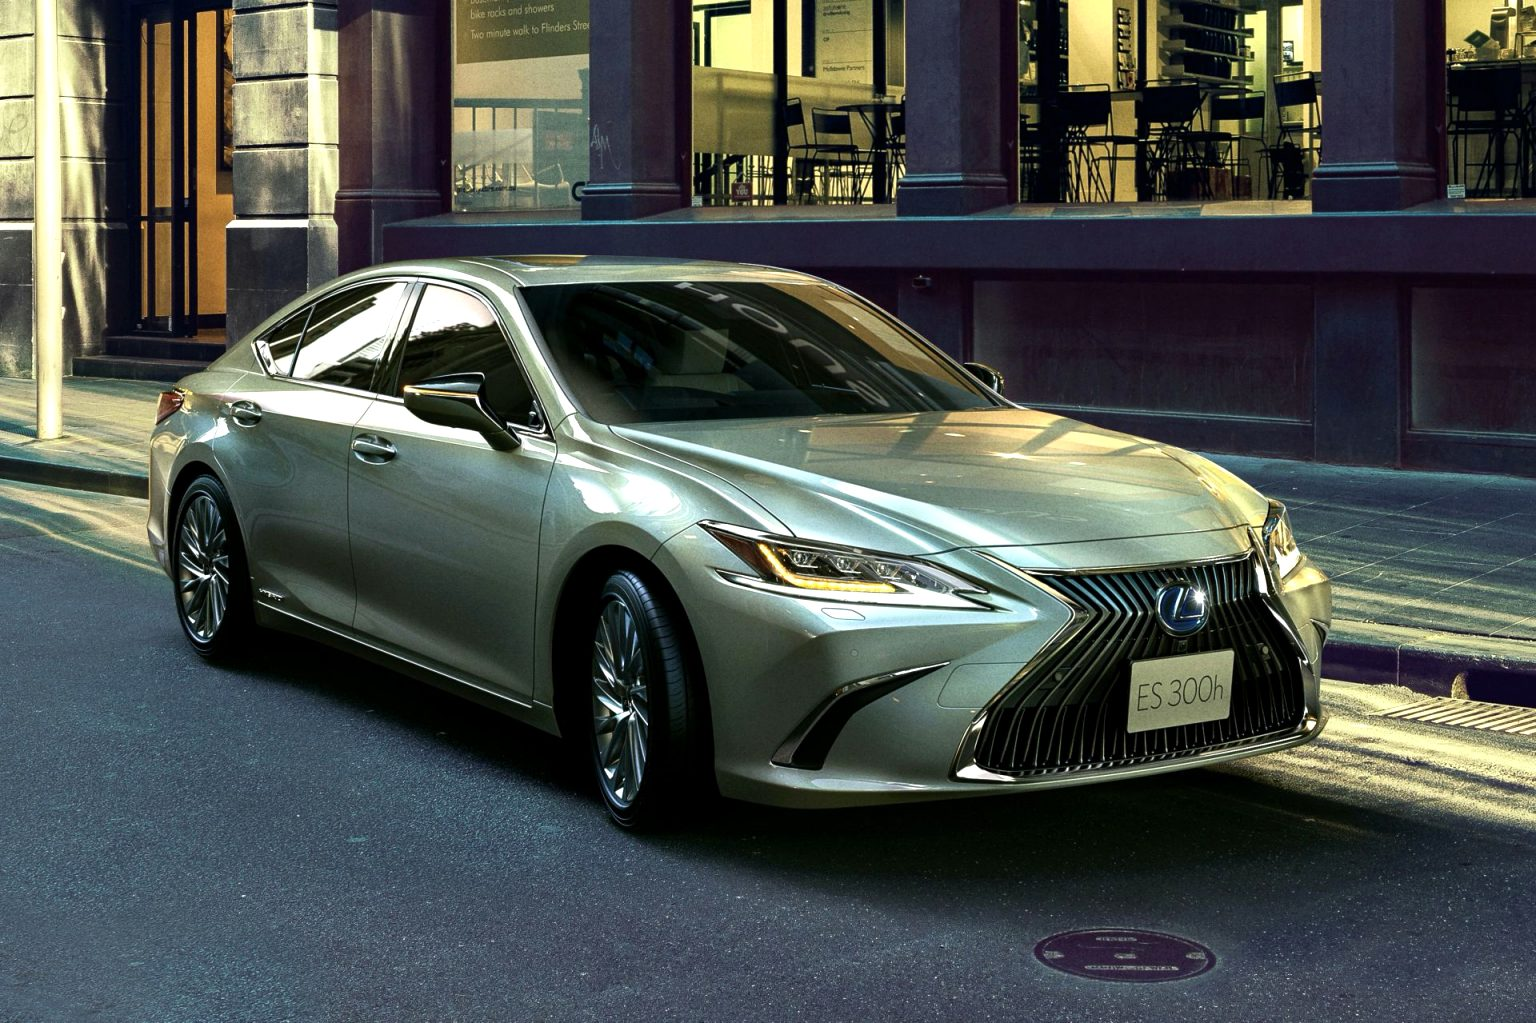 lexus es 2021 price Prices